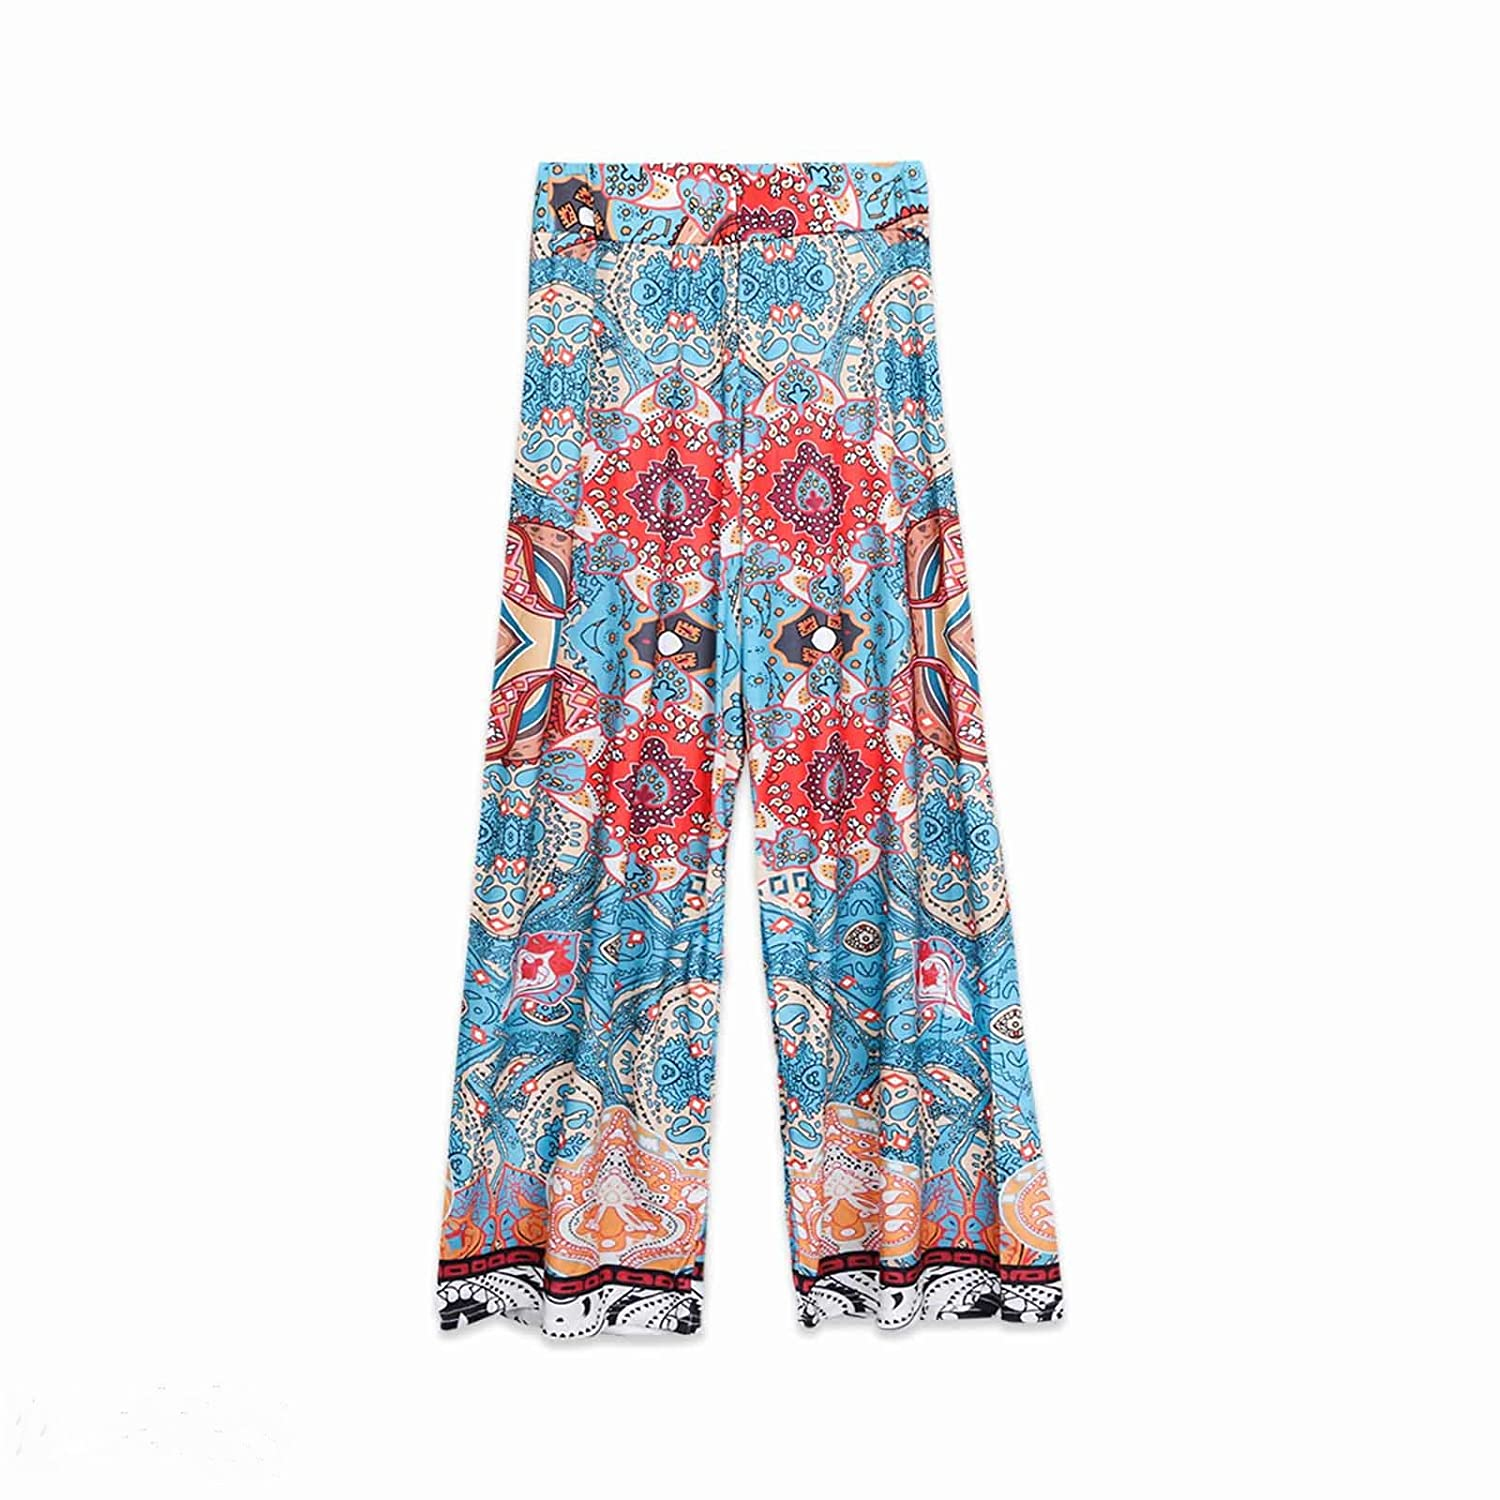 Gaono Fashion Summer Mom Kids Girl Flower Print Casual Pants Family Trousers